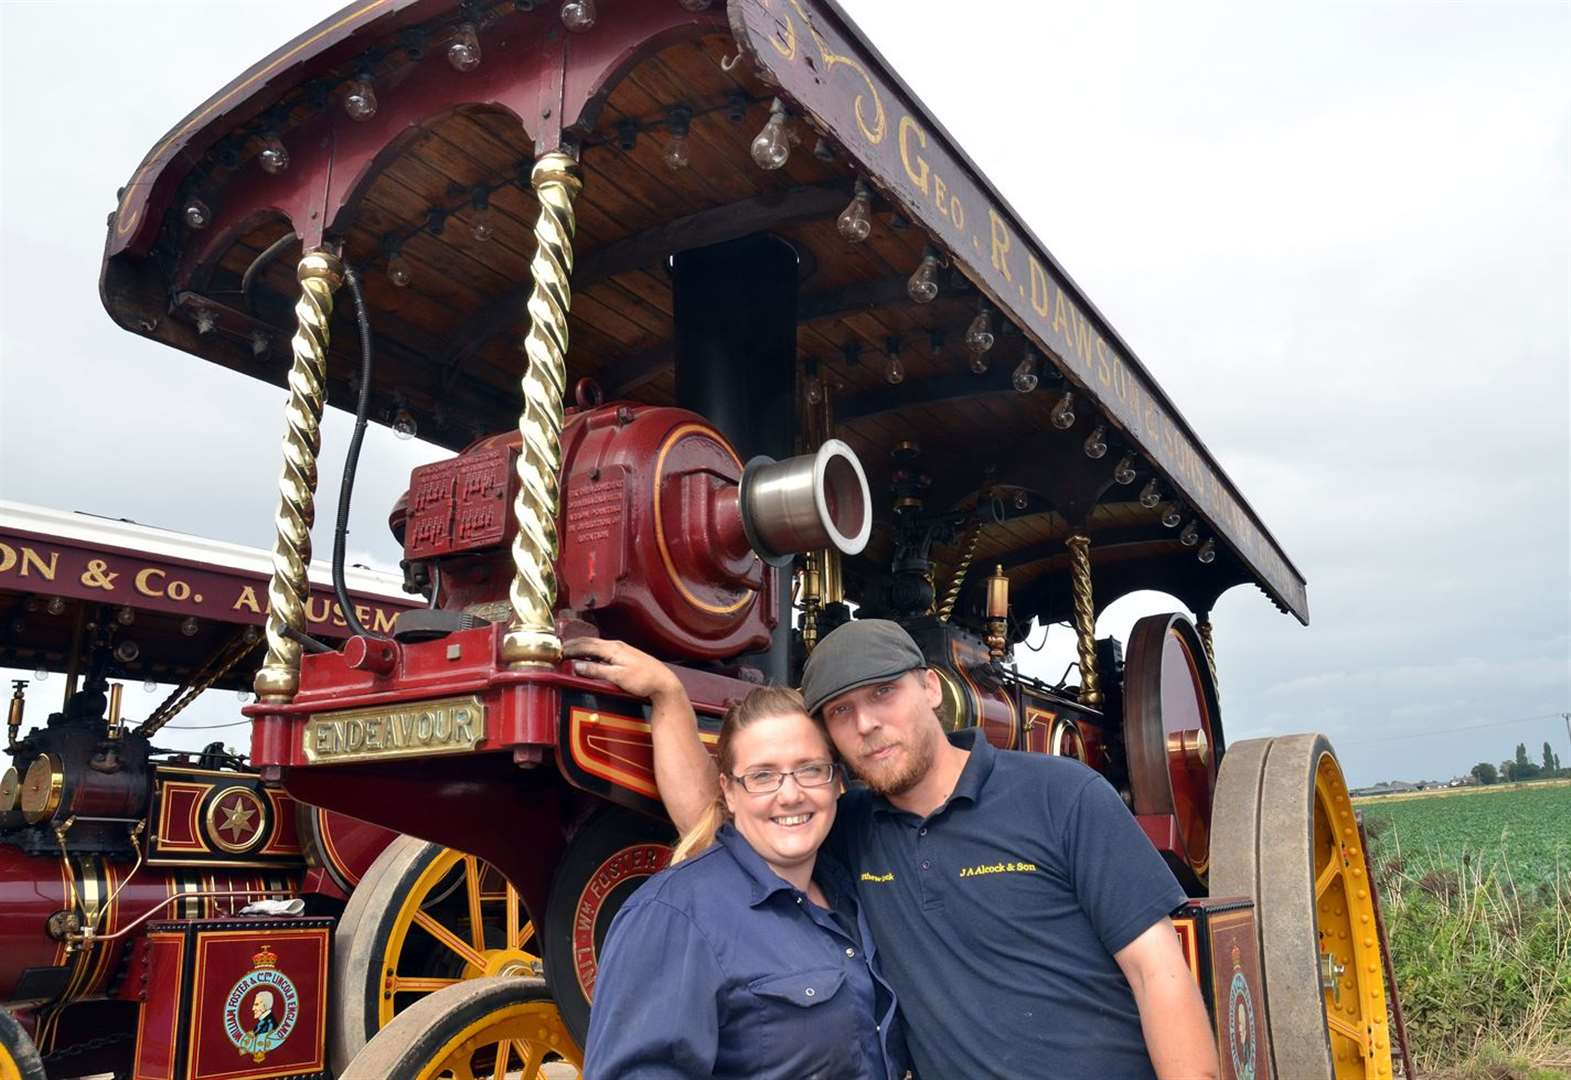 All aboard for steam threshing and classic car show